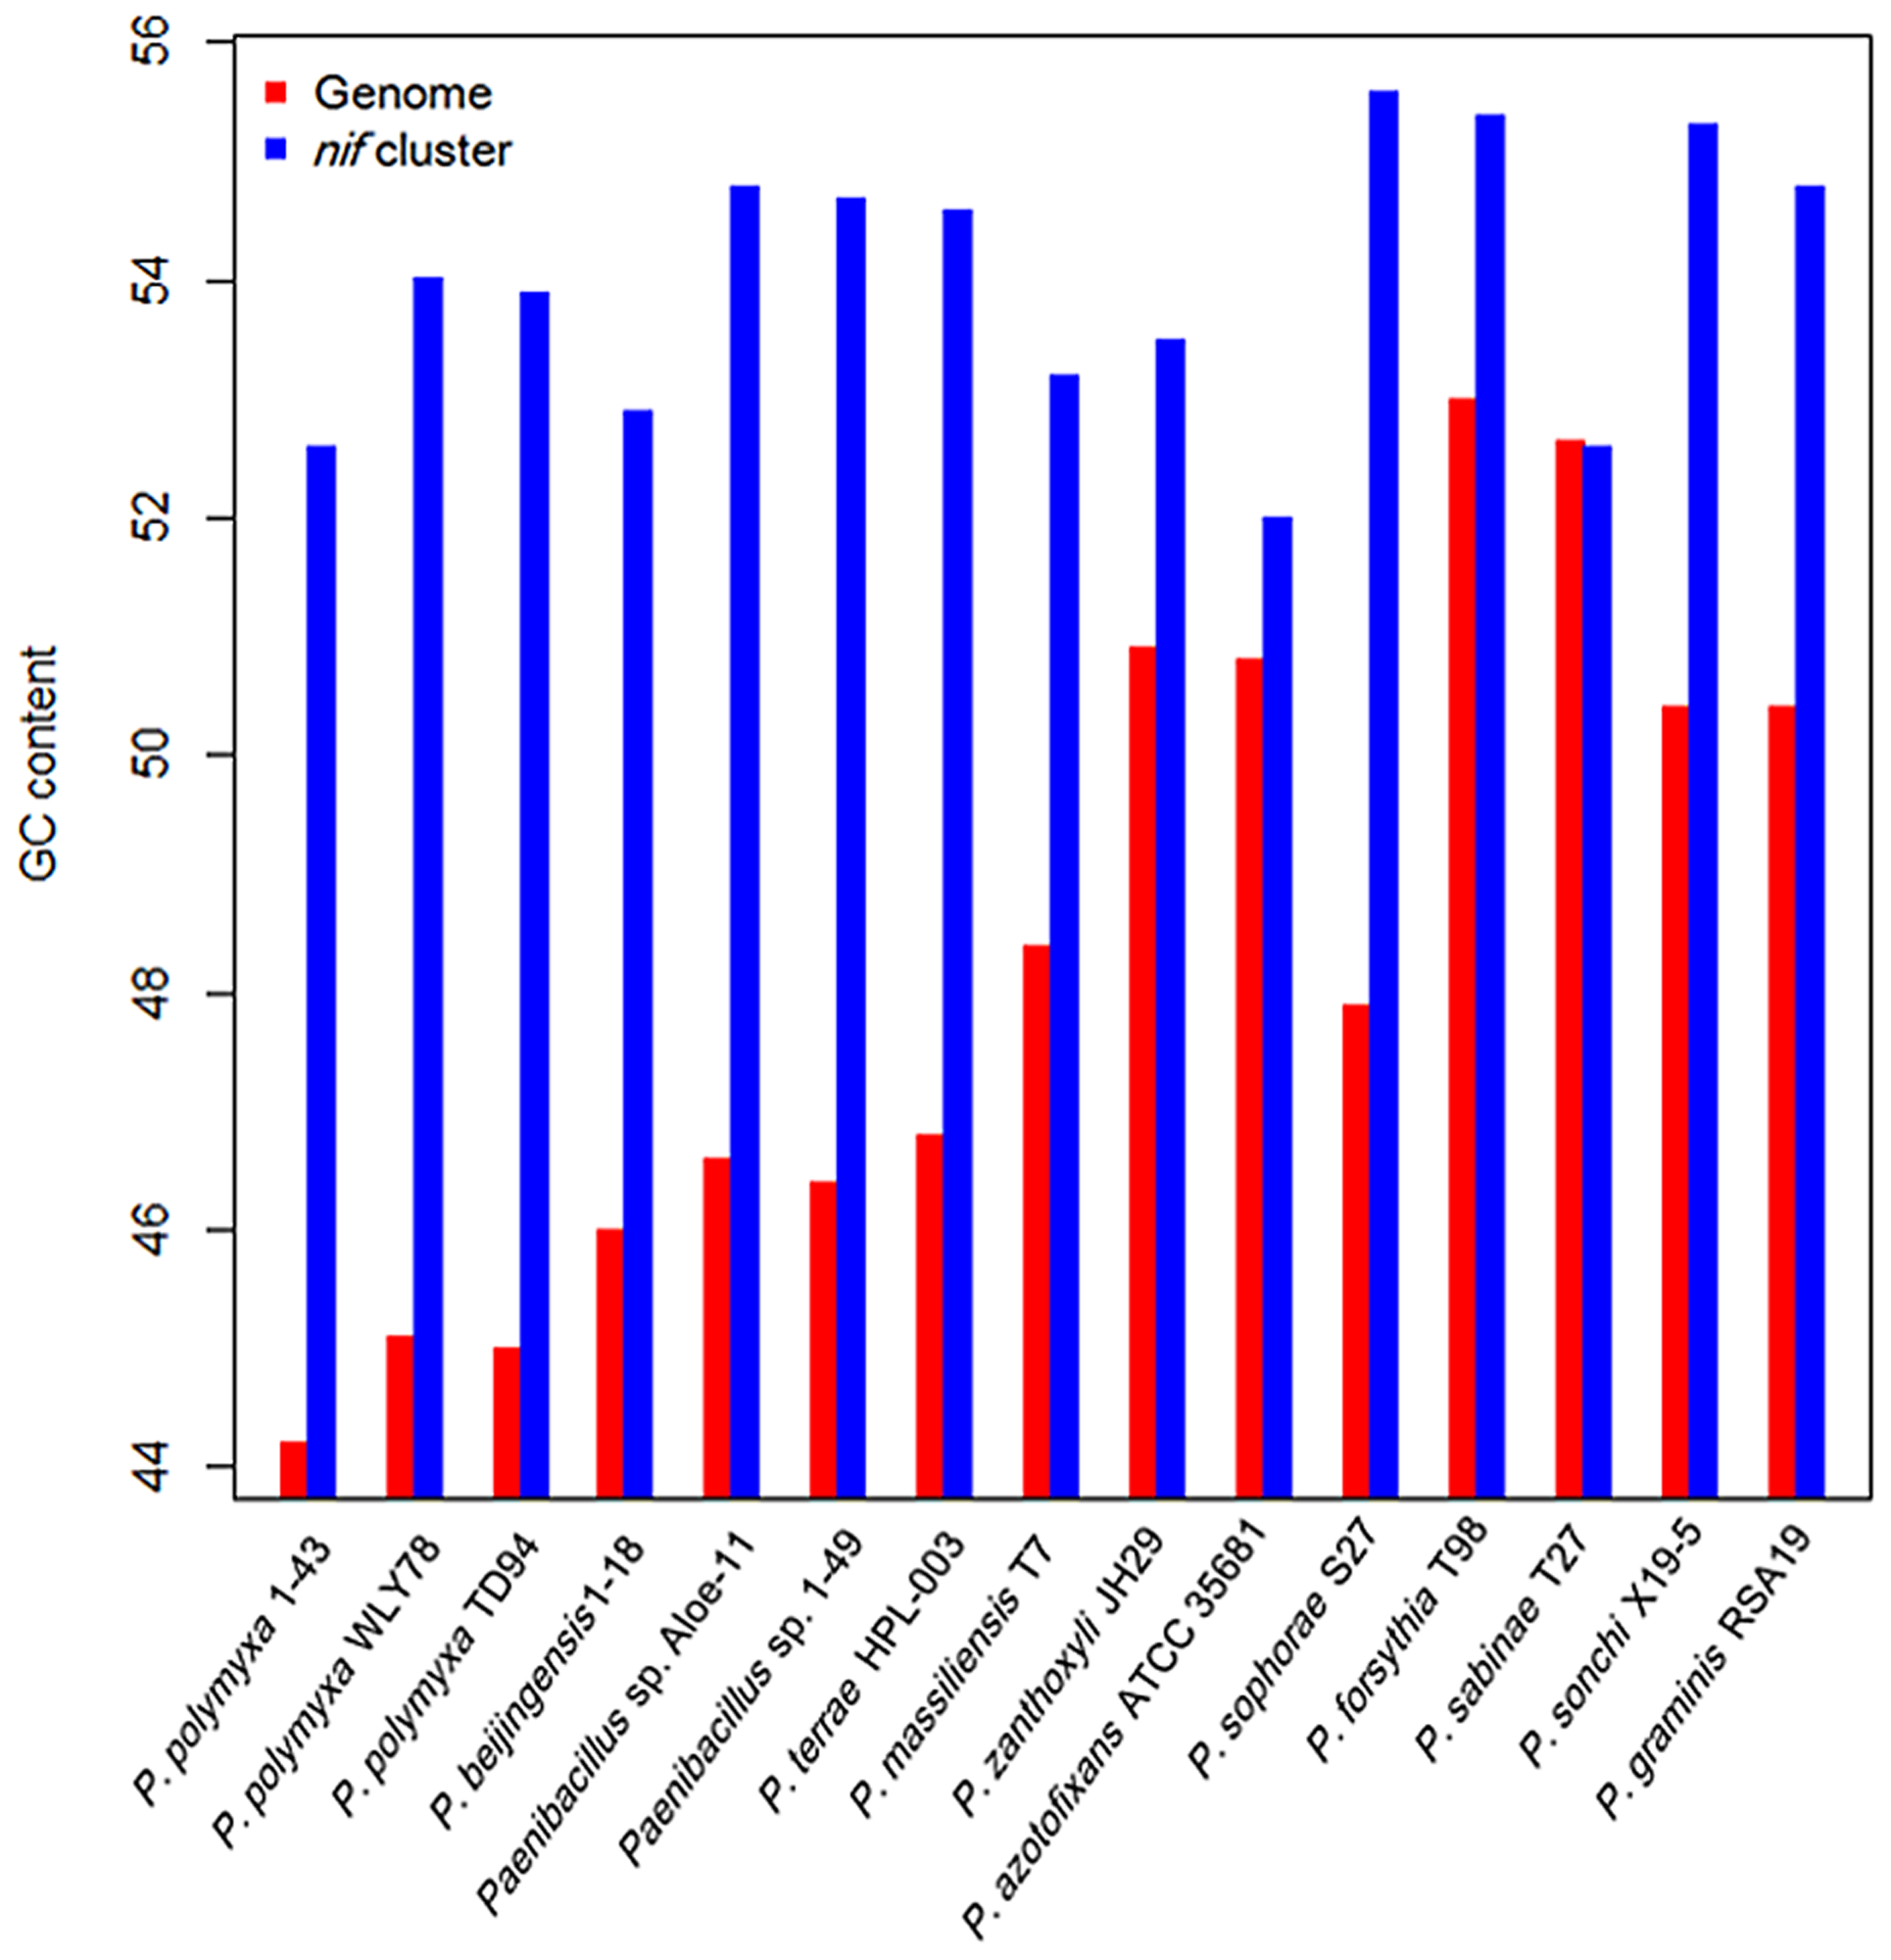 Comparison of G+C contents of the <i>nif</i> clusters with those of the average of the chromosomal genomes.